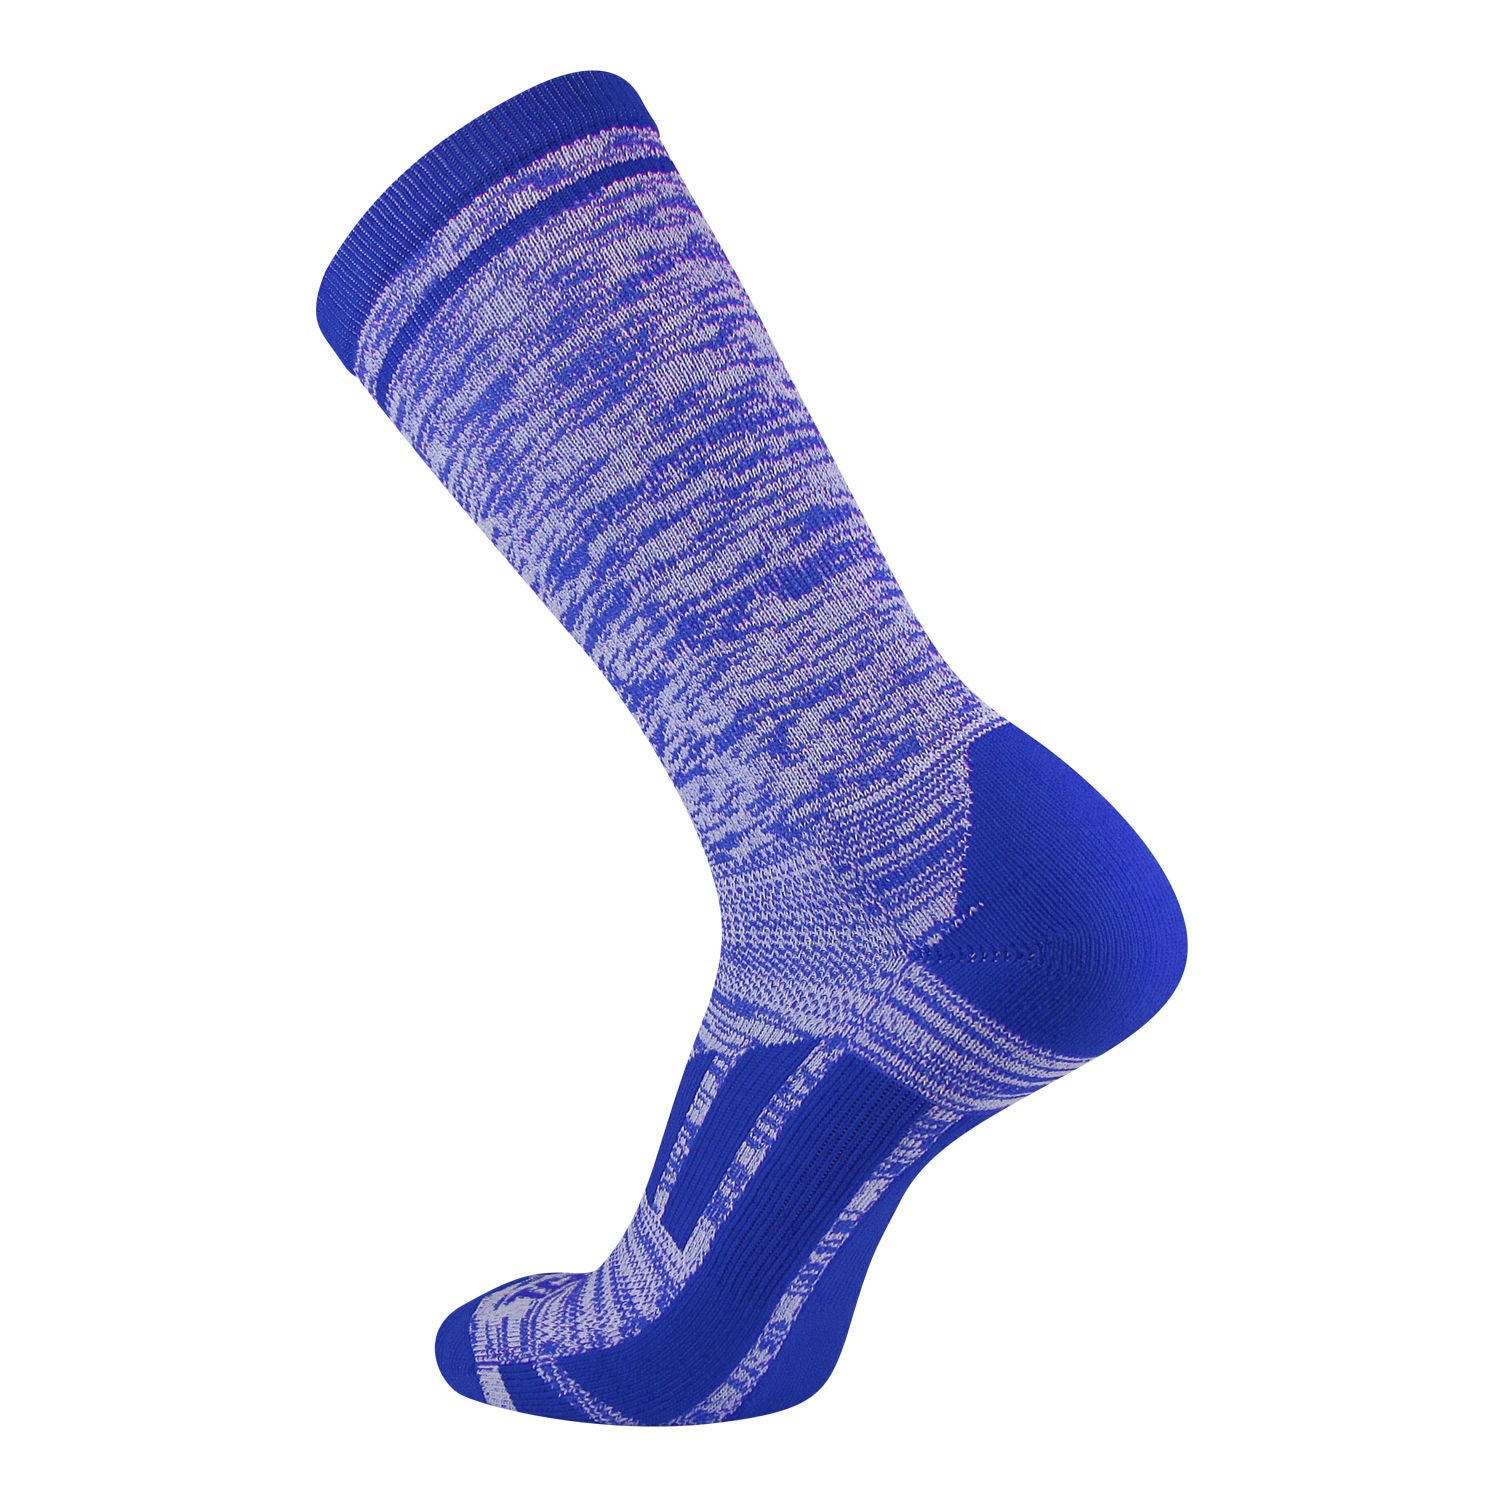 TCK Elite Heather Basketball, Football, Lacrosse, Team Crew Socks